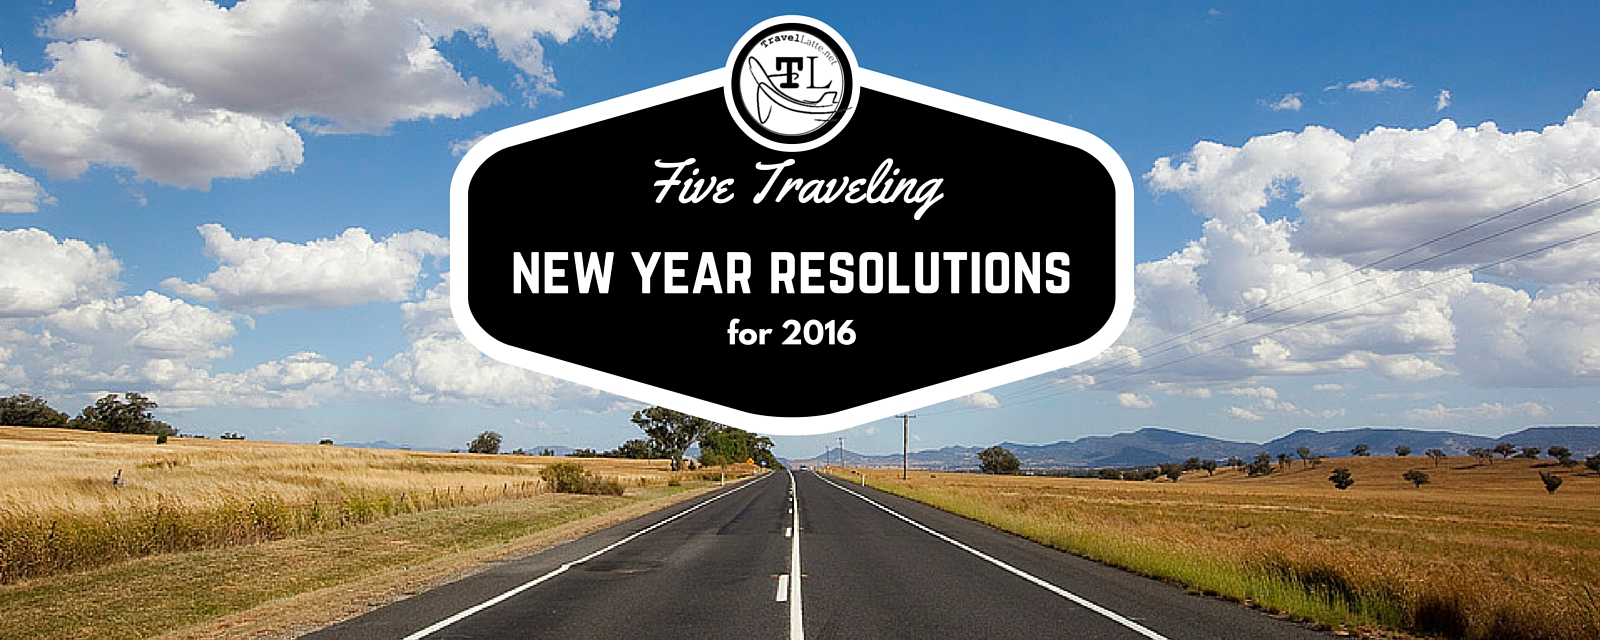 Five Traveling New Year Resolutions For 2016